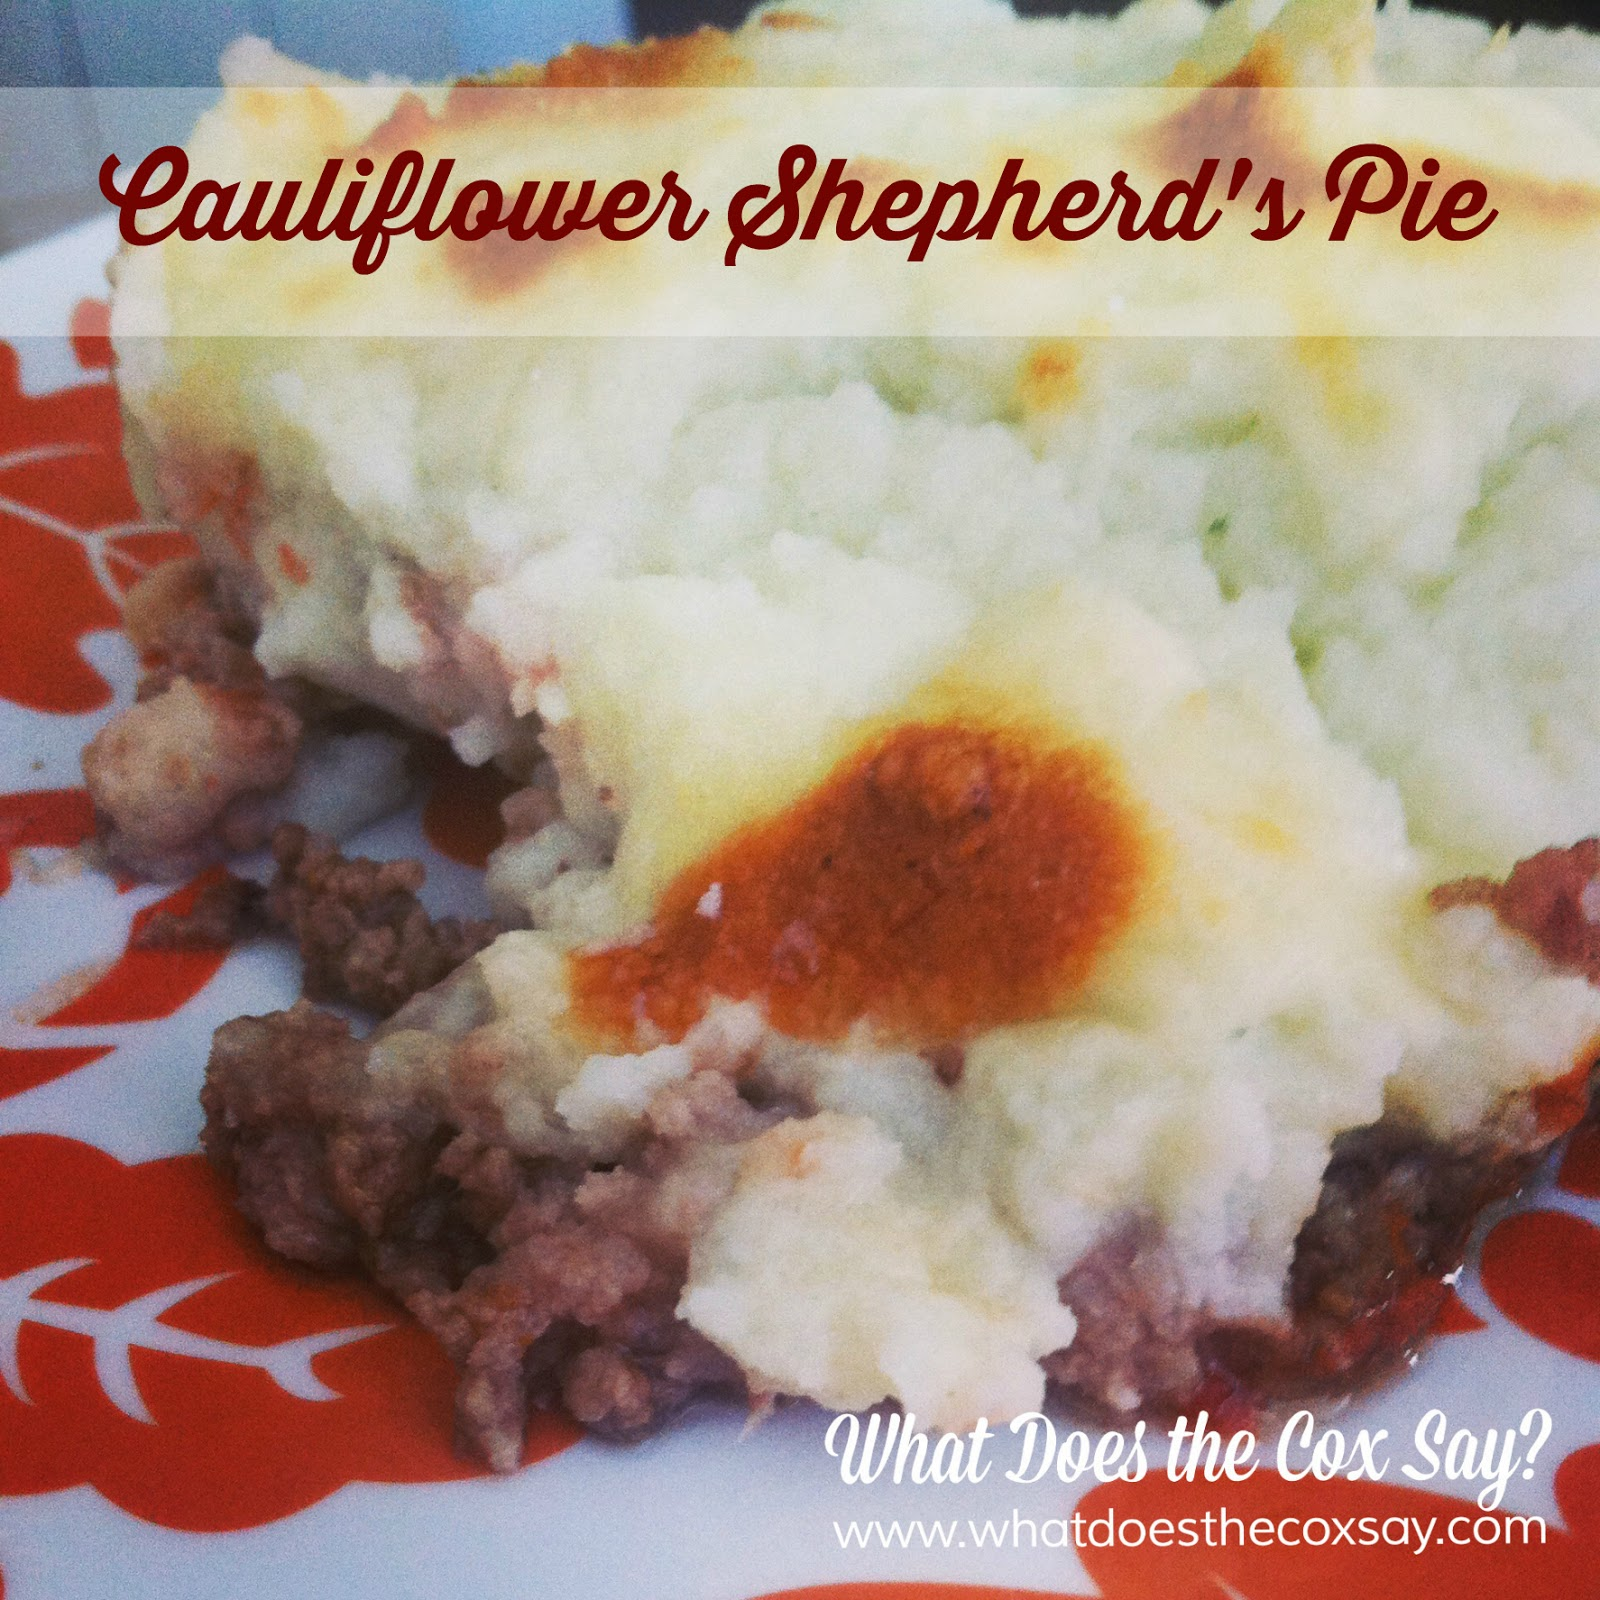 #whatdoesthecoxsay.com #Recipe #CauliflowerMashedPotatoes #ShepherdsPie #TakeShapeForLife #LeanandGreen